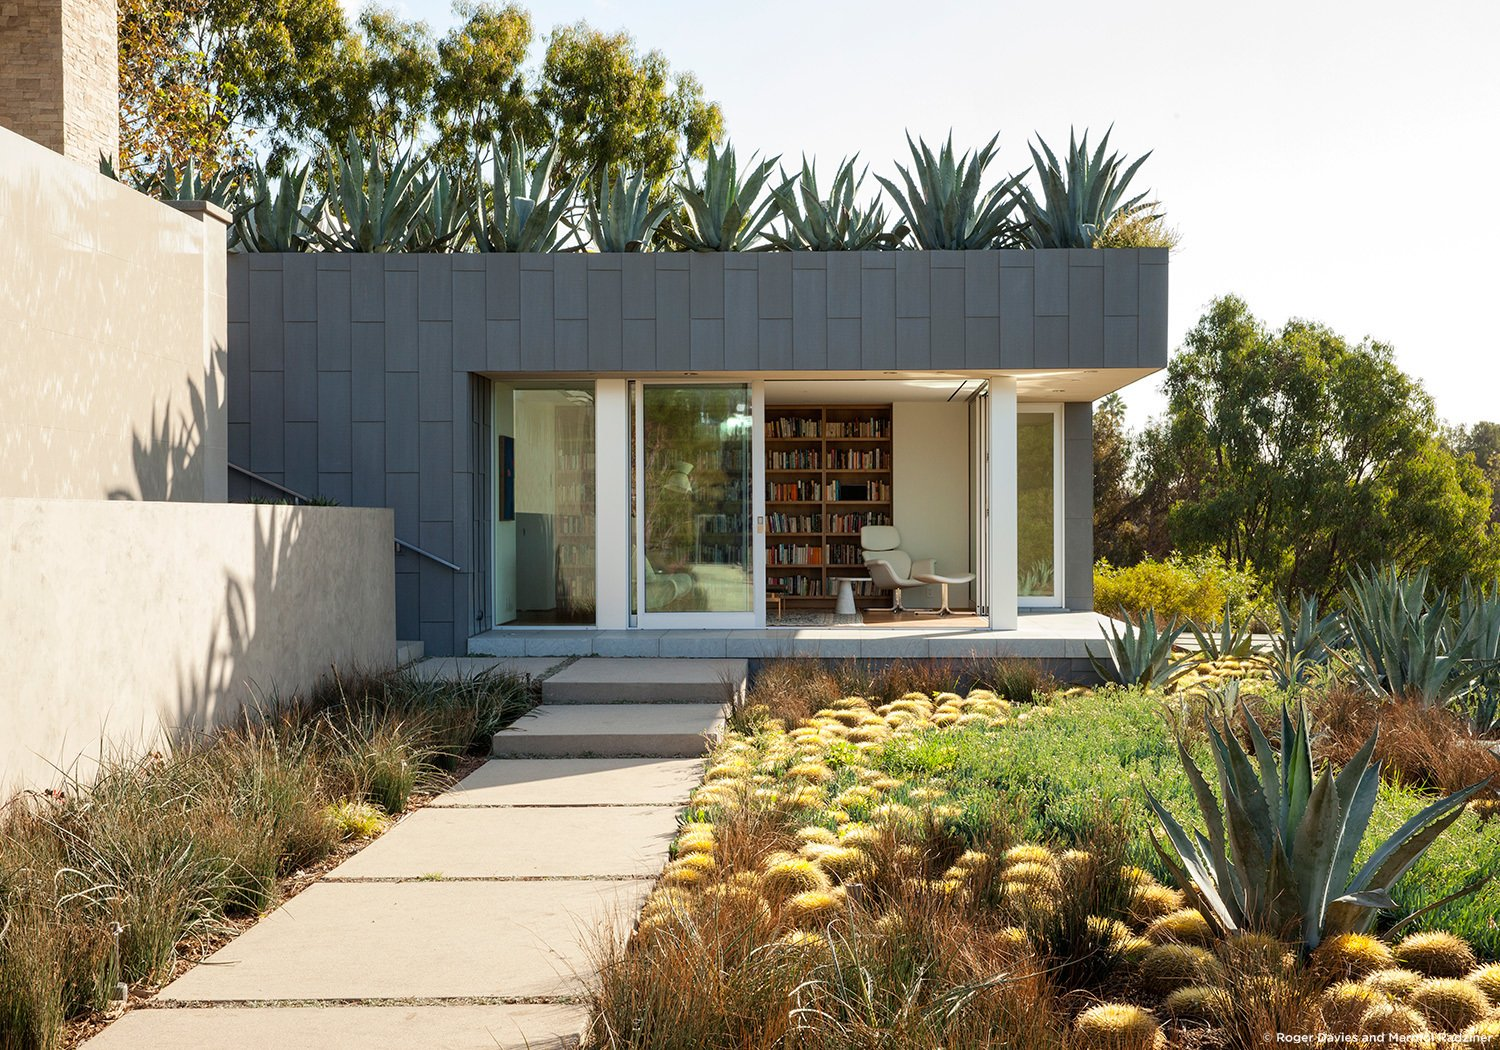 #SummitridgeResidence #modern #midcentury #levels #exterior #outside #outdoor #landscape #green #pathway #geometry #rectilinear #structure #interior #bookshelves #BeverlyHills #MarmolRadziner